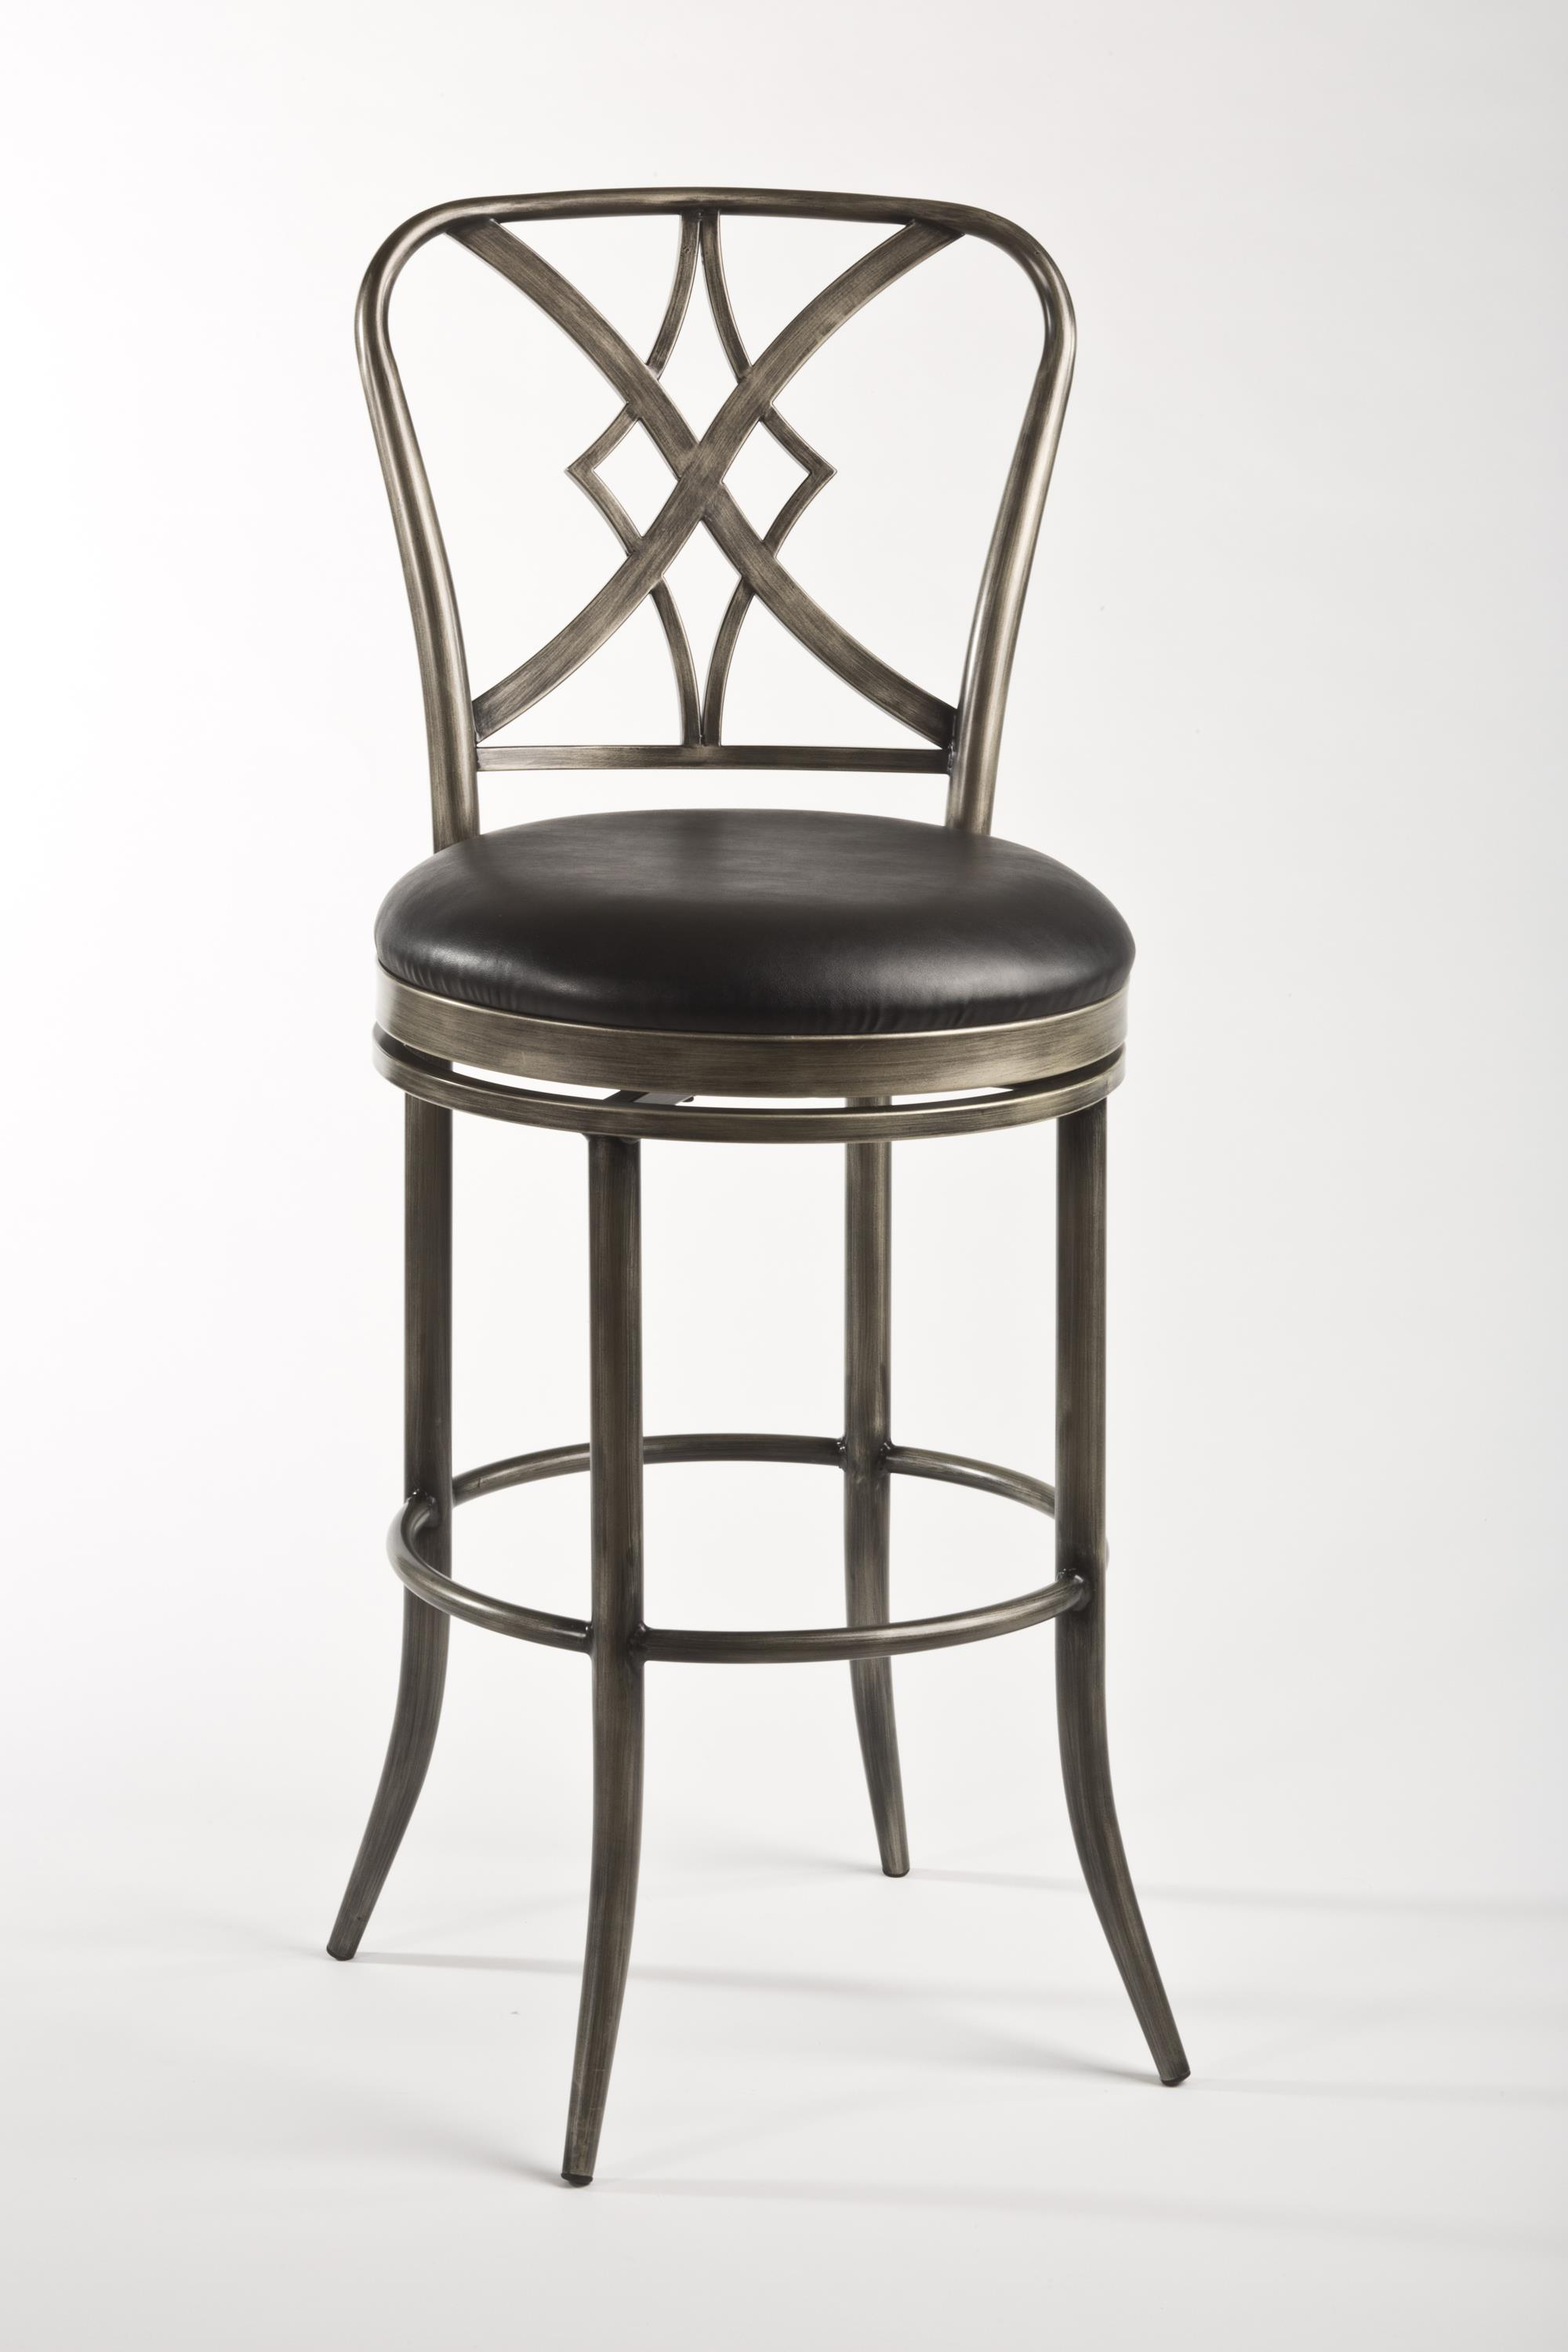 Hillsdale Metal Stools Jacqueline Counter Stool - Item Number: 5124-826